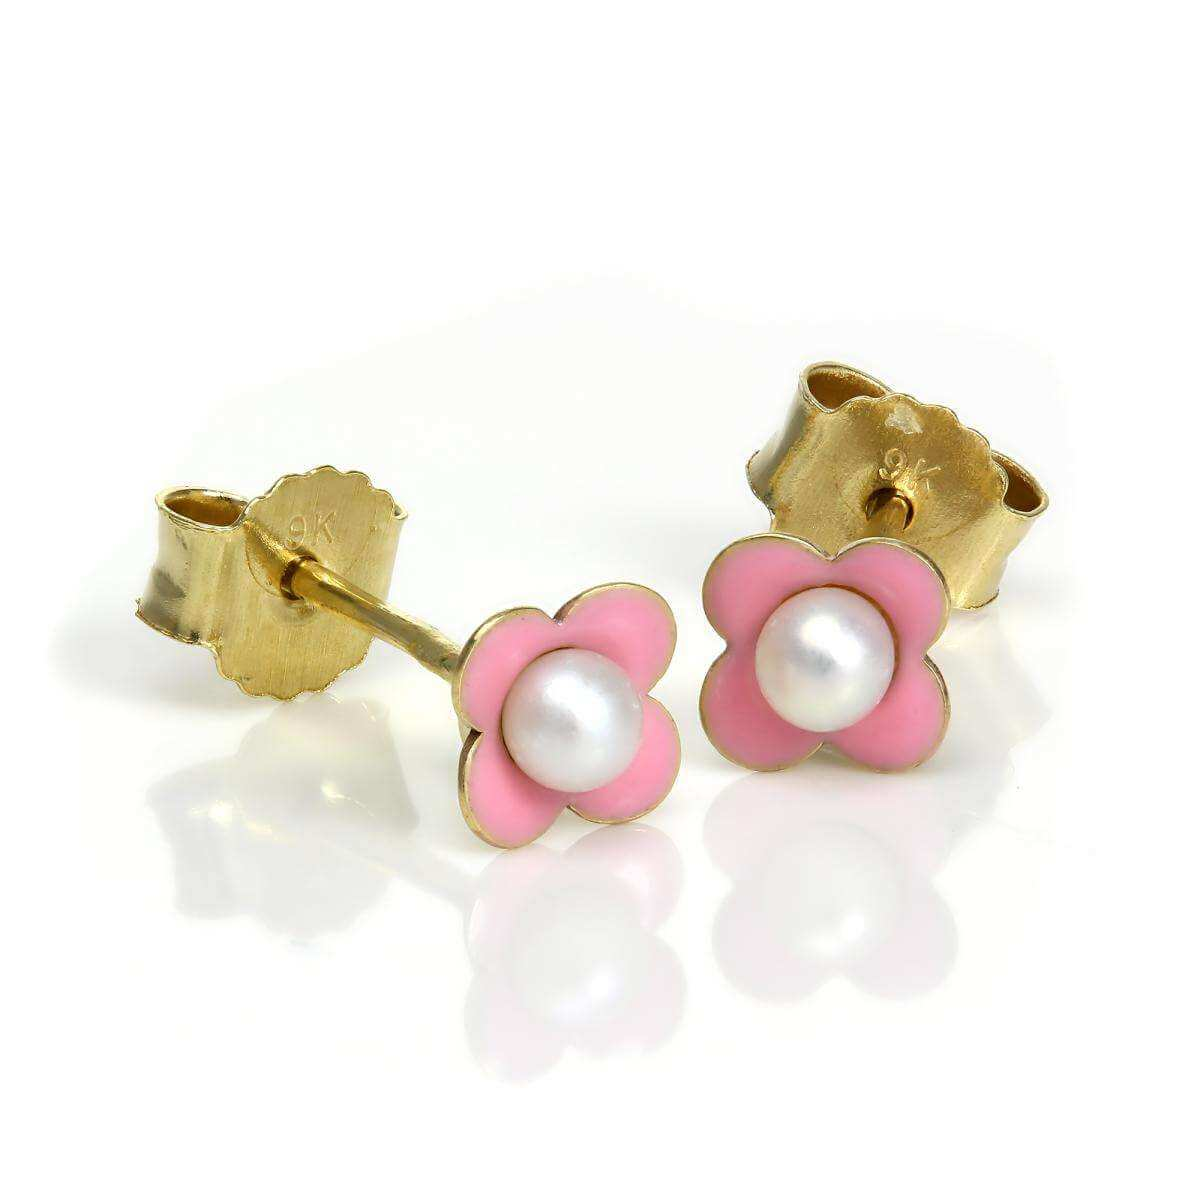 9ct Gold & Pink Enamel Pearl Flower Stud Earrings